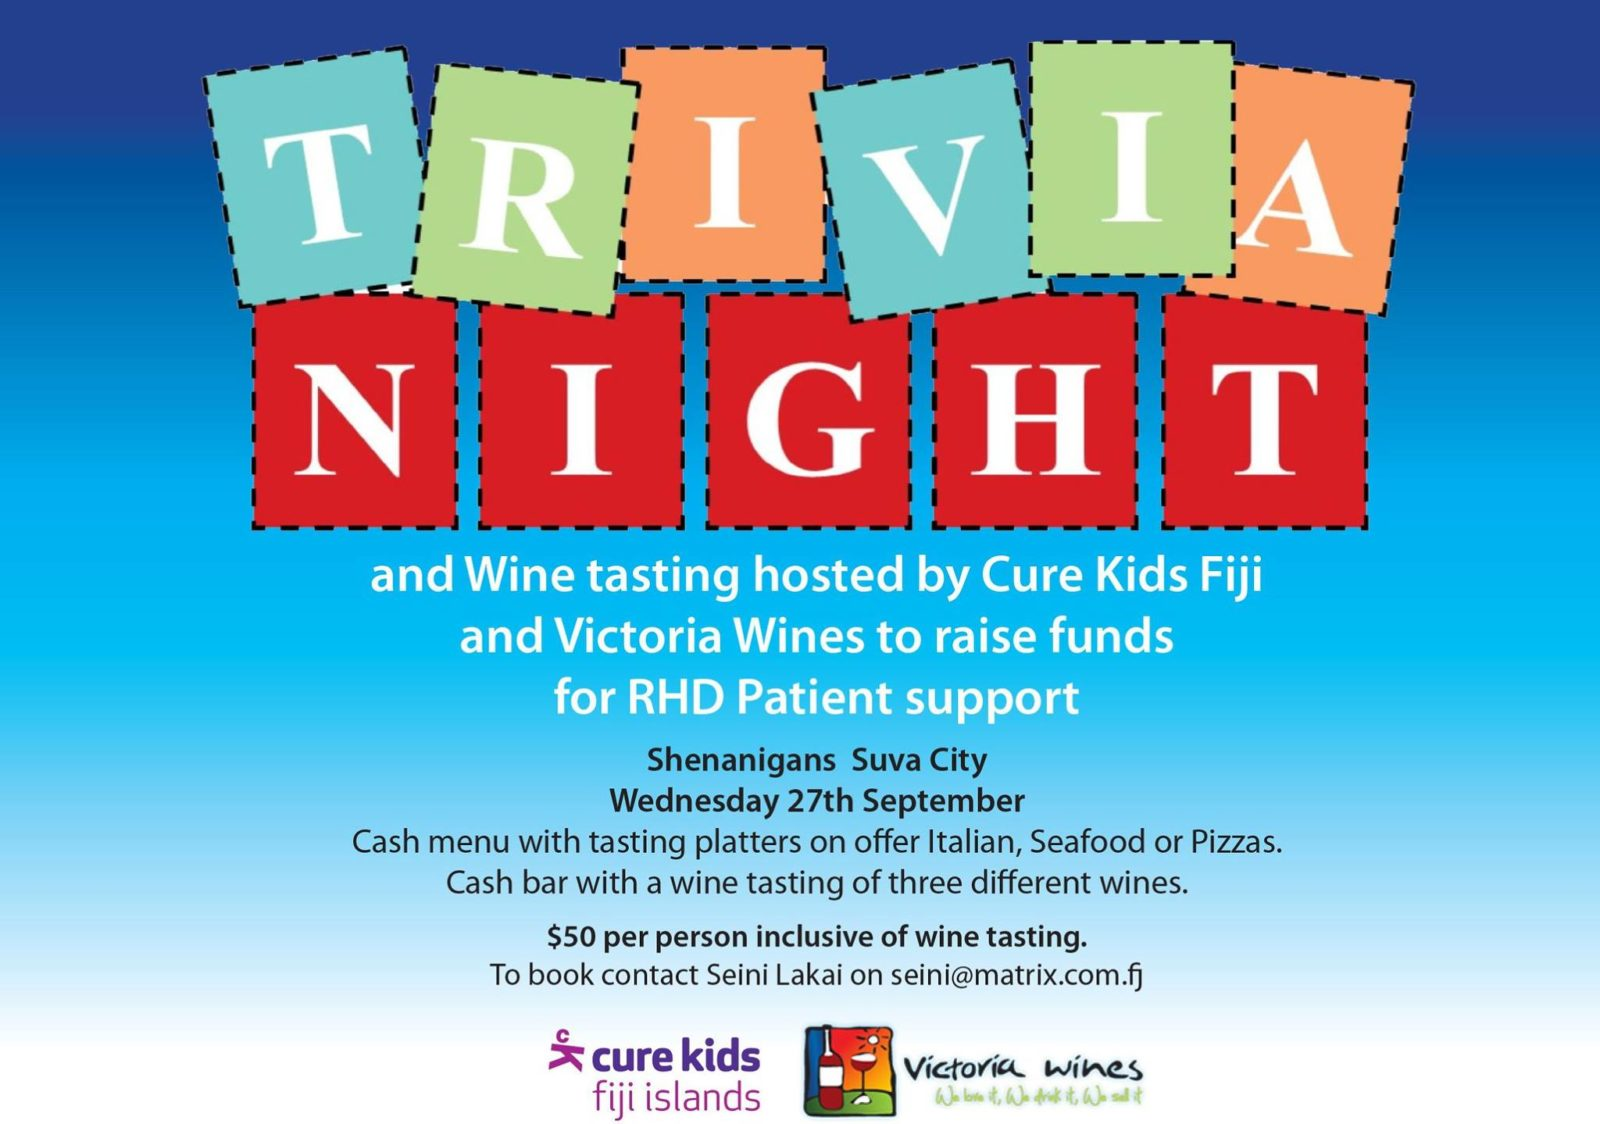 Trivia night for Cure Kids Fiji RHD Patient support